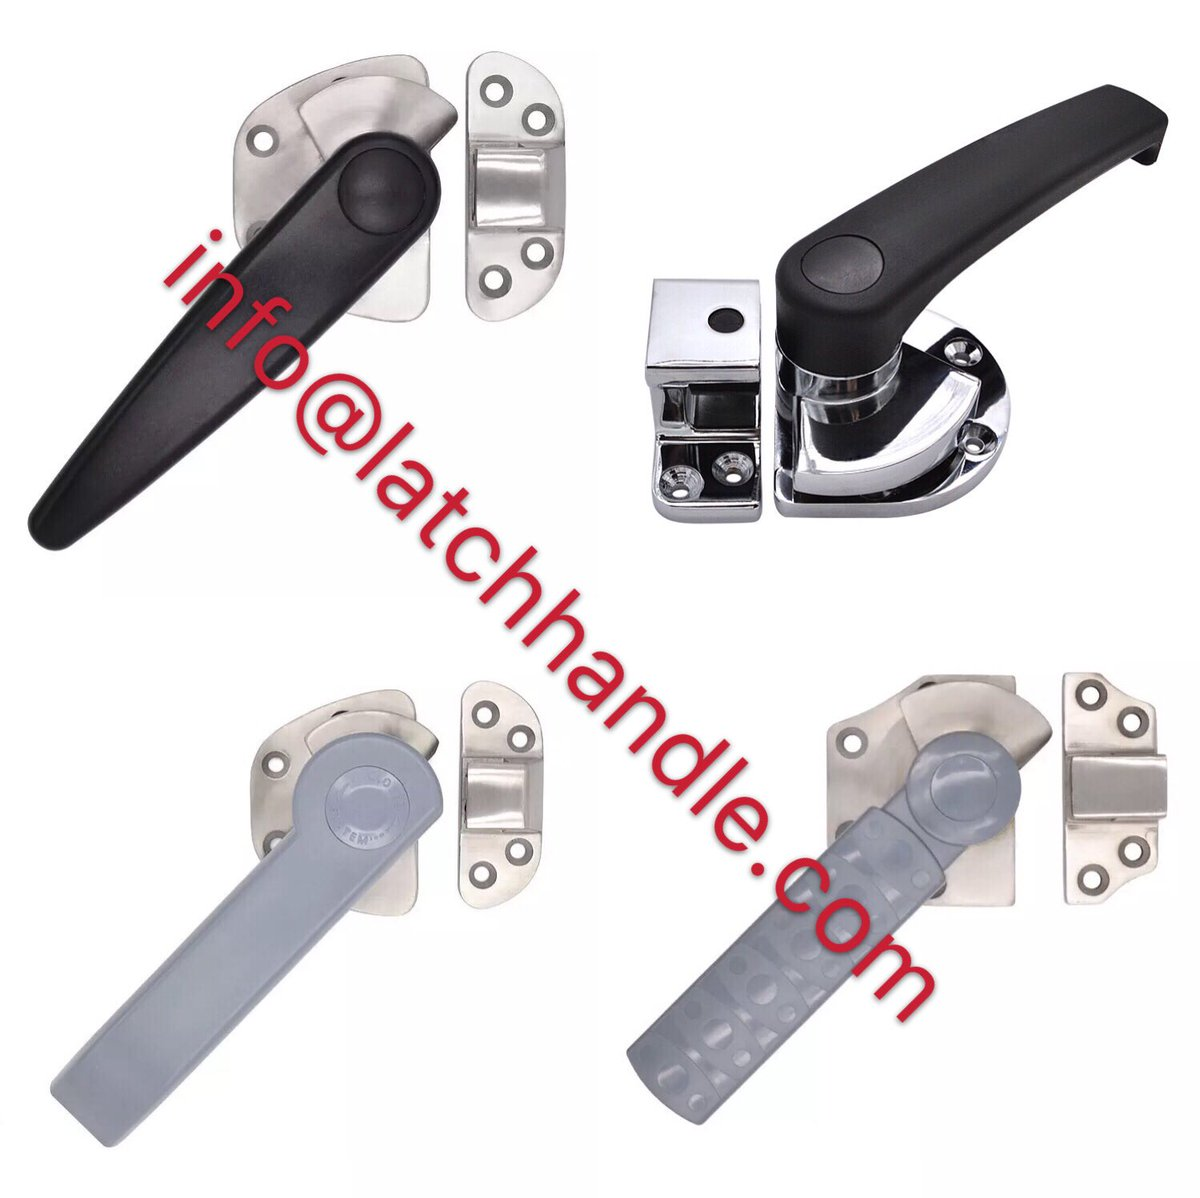 Latch Handle Hinge Lock manufacturer (@Latch_Handle) | Twitter